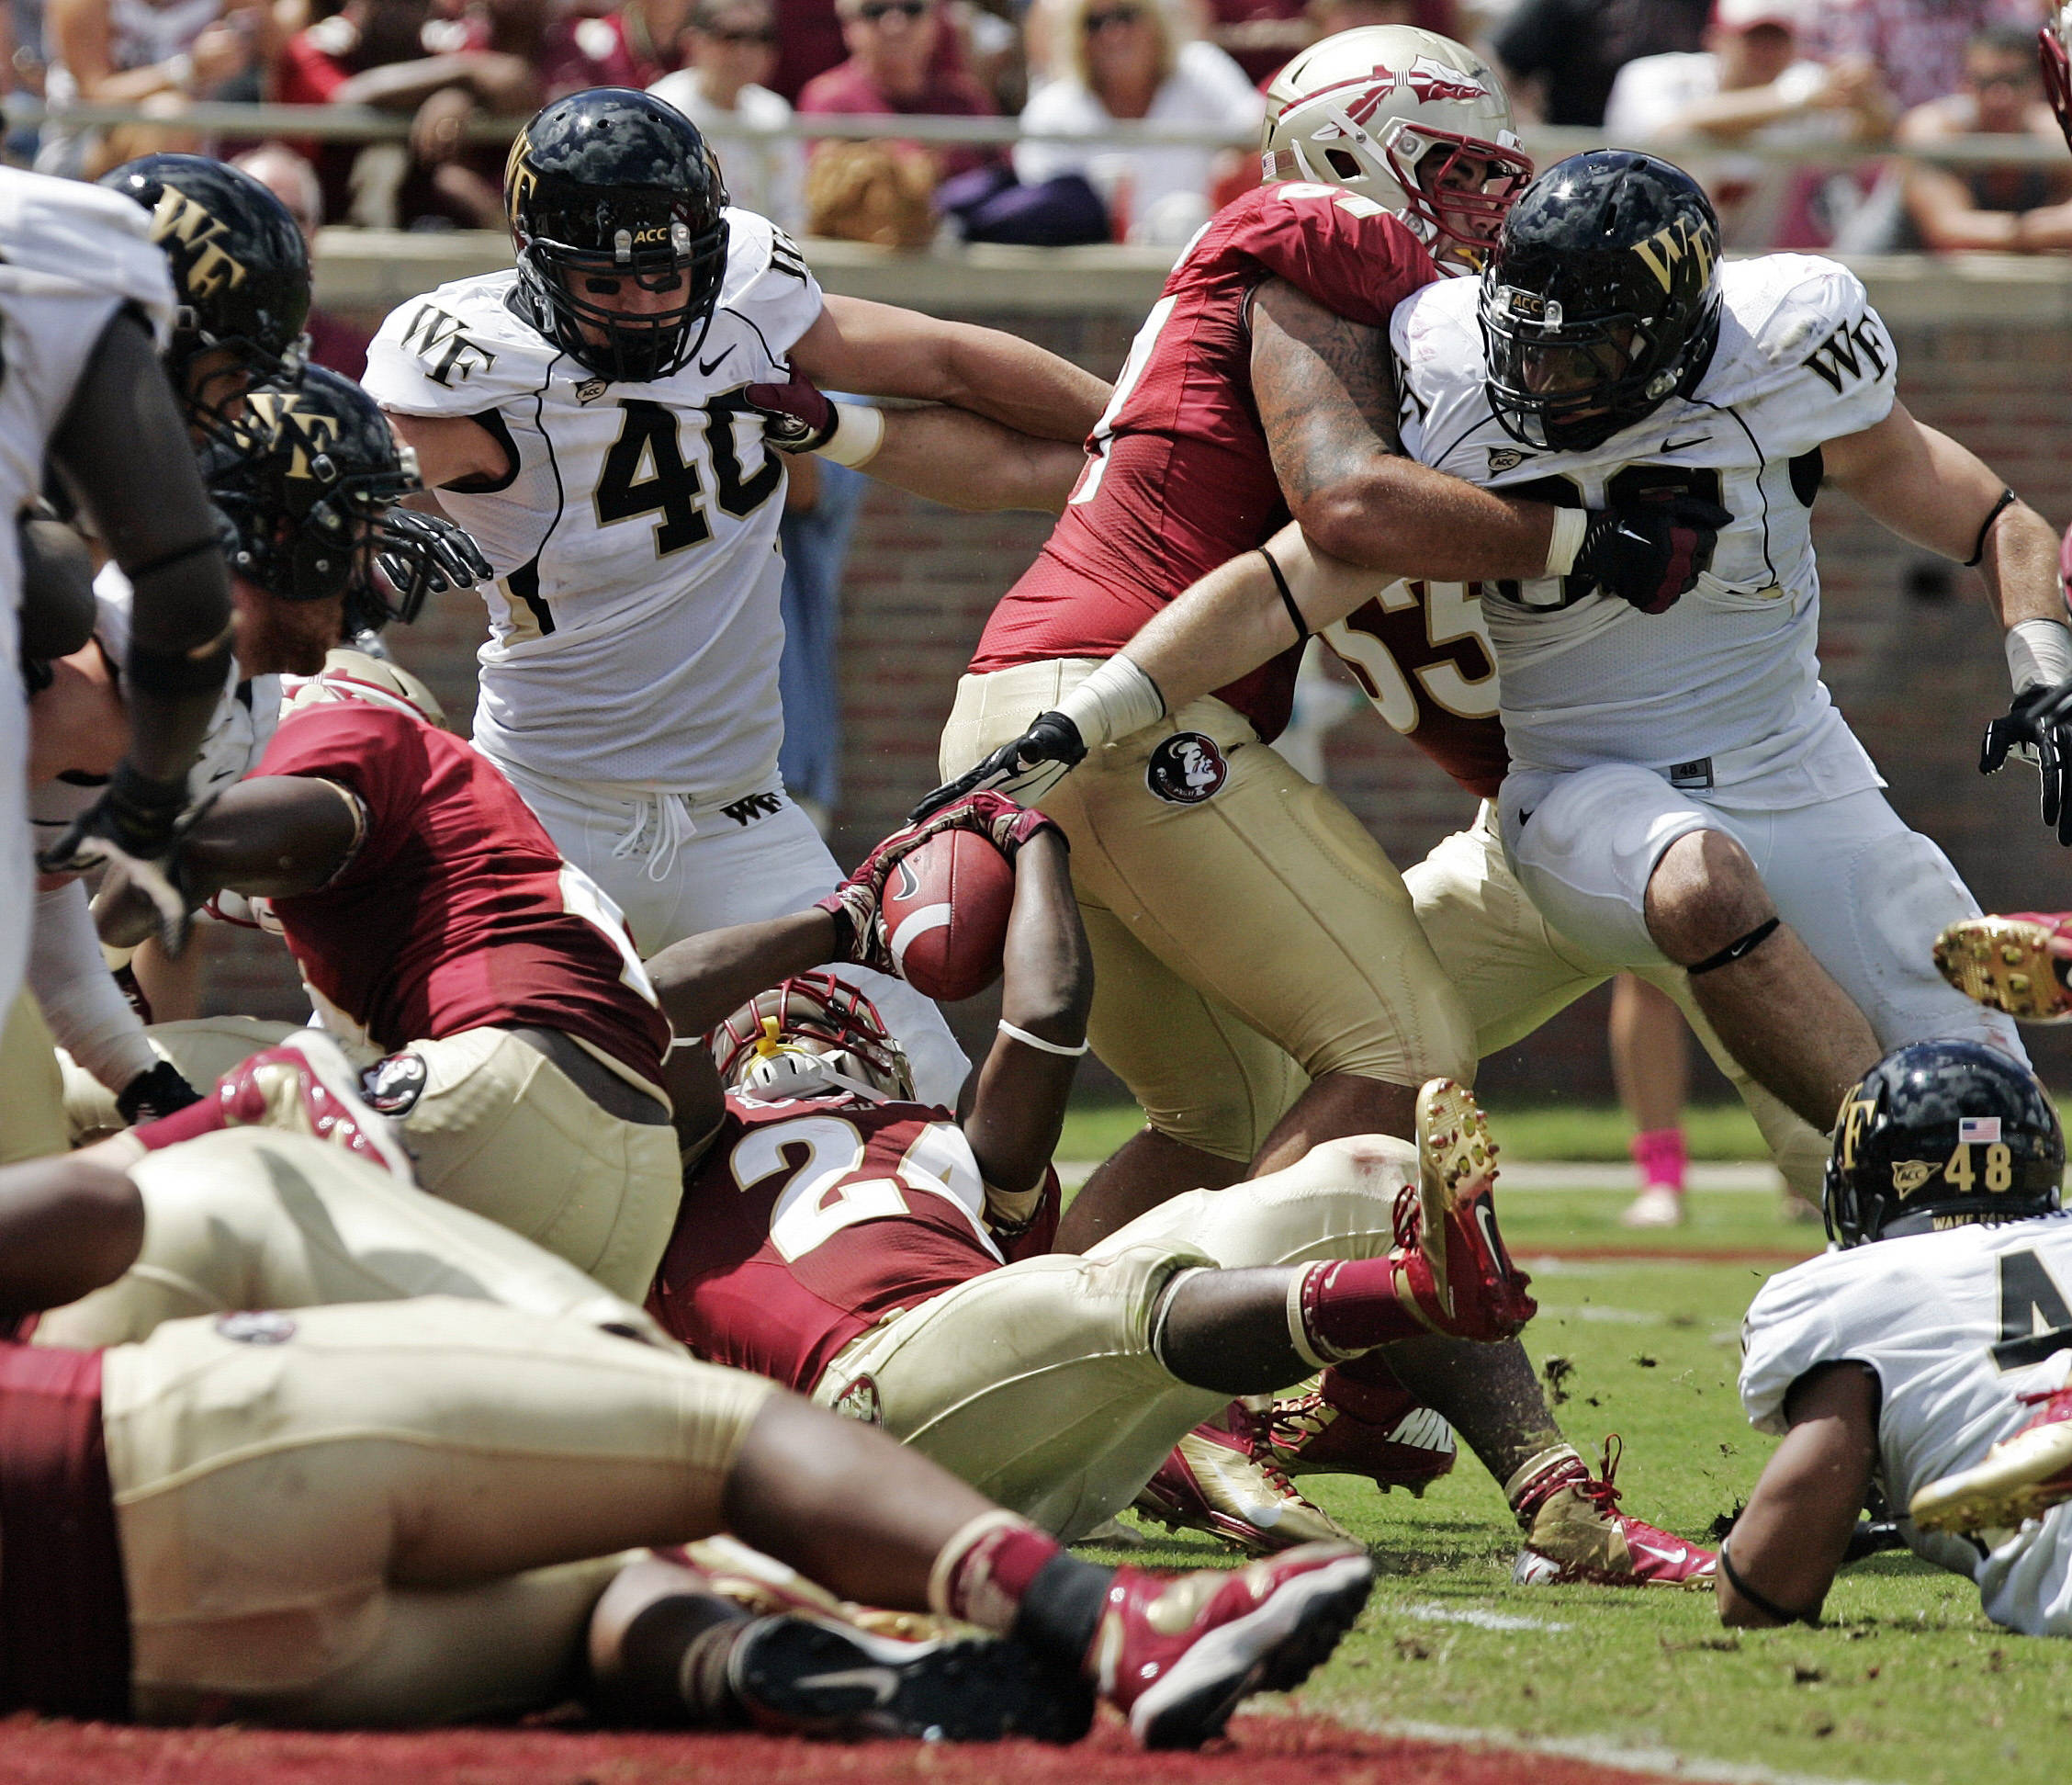 The Wake Forest defense stops Florida State's Lonnie Pryor from scoring. Florida State won 52-0. (AP Photo/Steve Cannon)